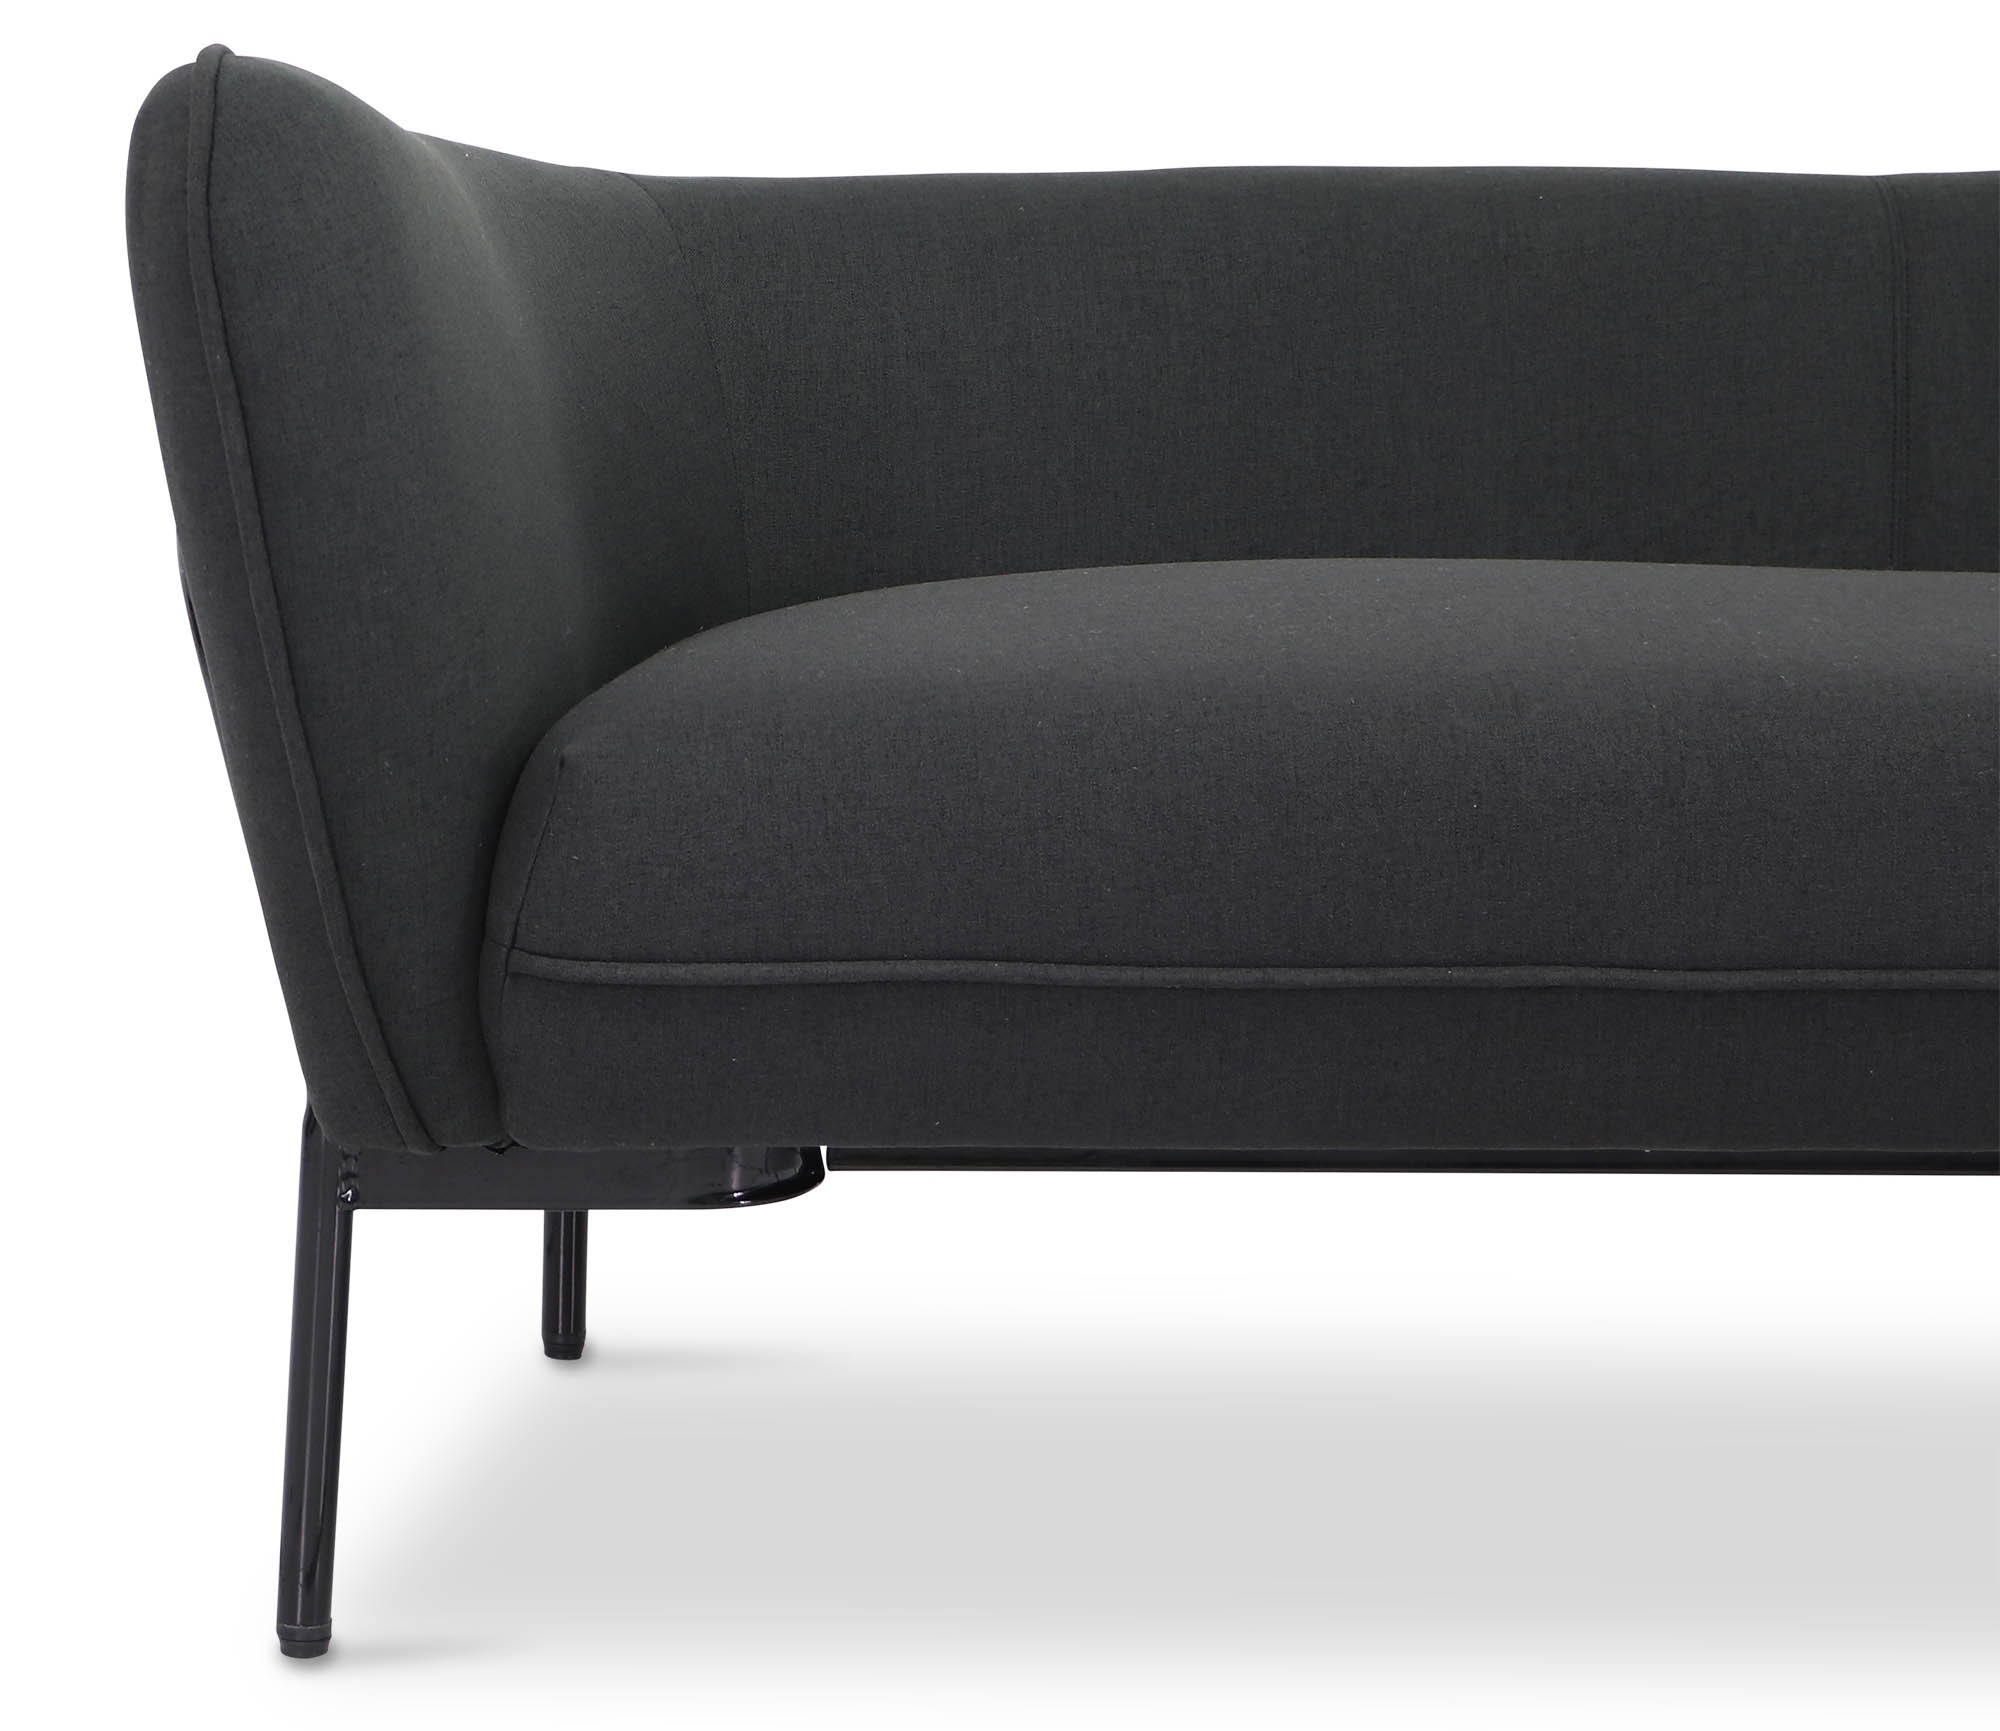 Karen Sofa In Black With Black Iron Stand | Furniture & Home Décor Pertaining To Karen Sofa Chairs (Image 11 of 20)